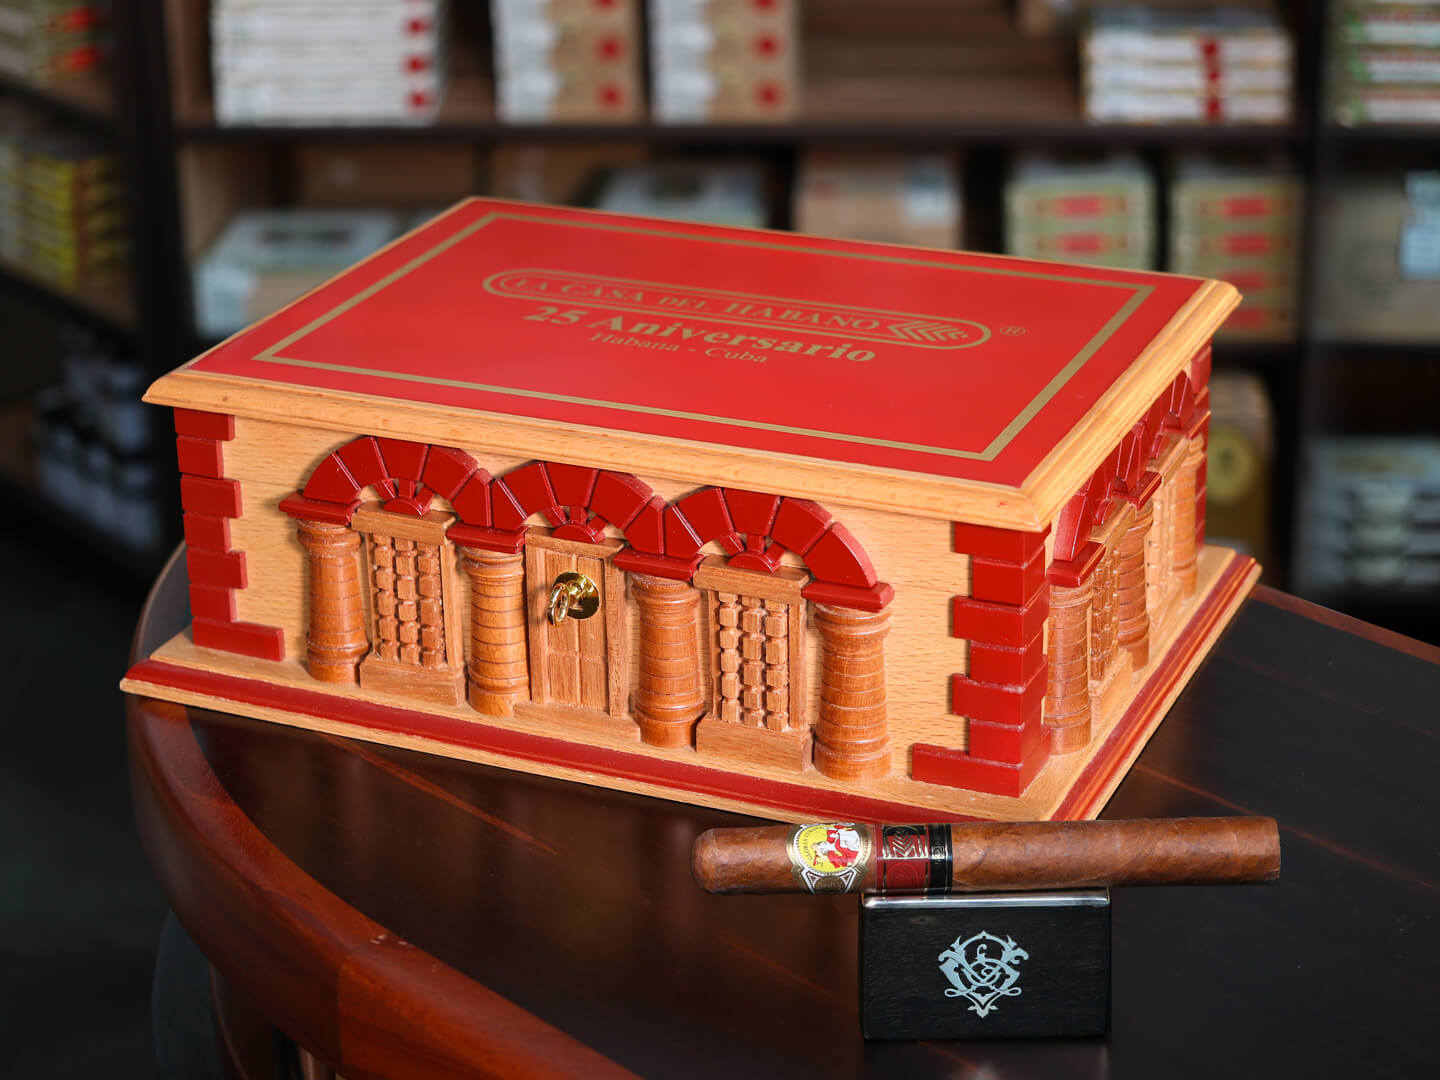 la-gloria-cubana-25-aniversario-lcdh-humidor-the-house-of-grauer-jpg